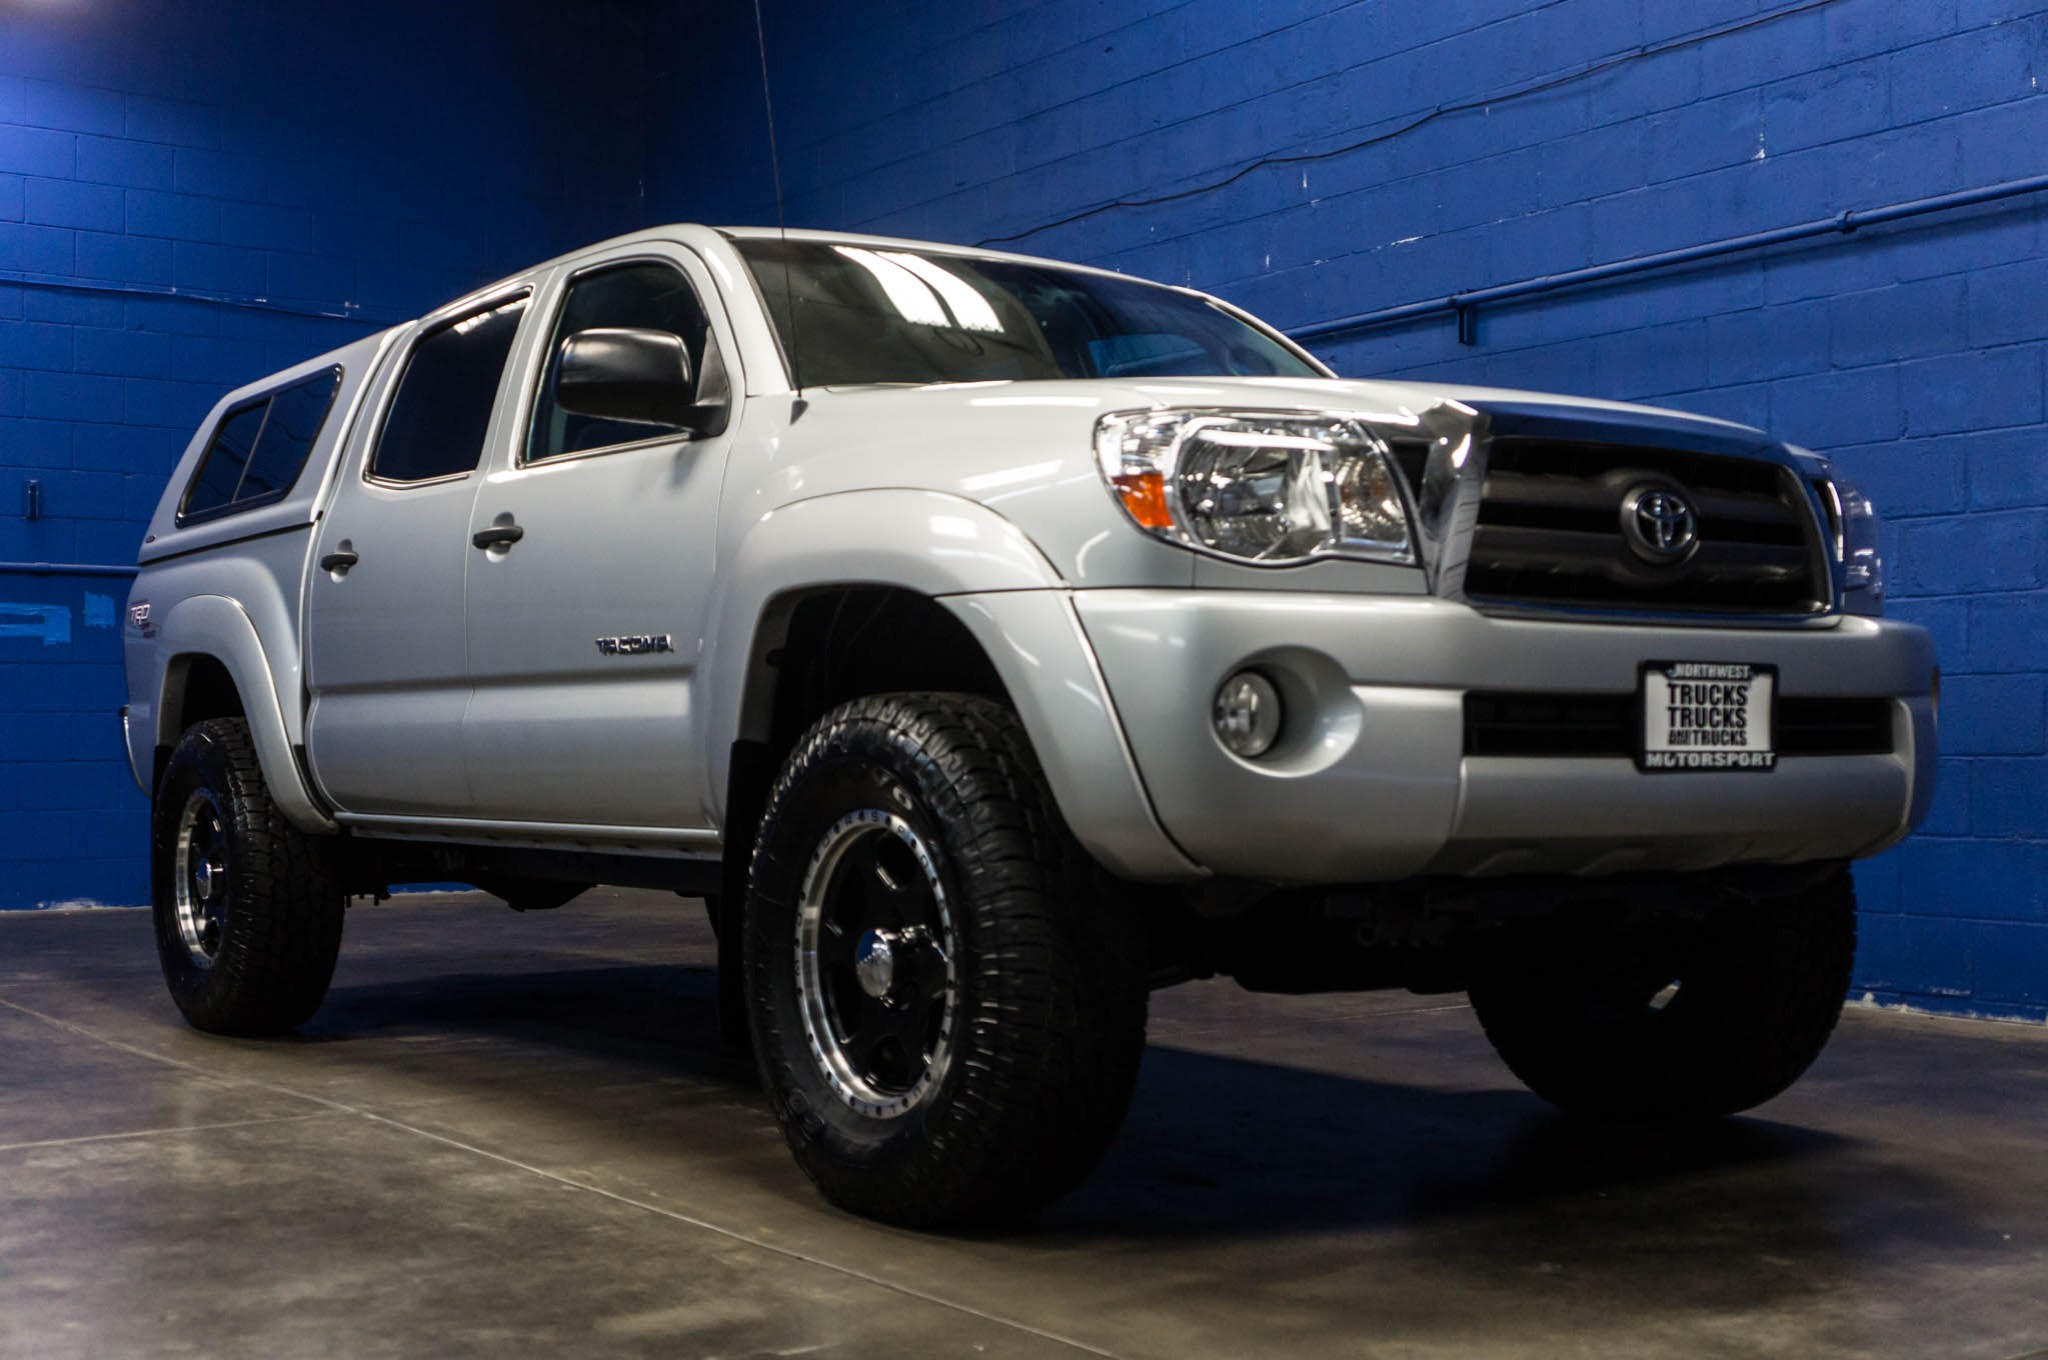 used lifted 2009 toyota tacoma sr5 4x4 truck for sale 35287. Black Bedroom Furniture Sets. Home Design Ideas